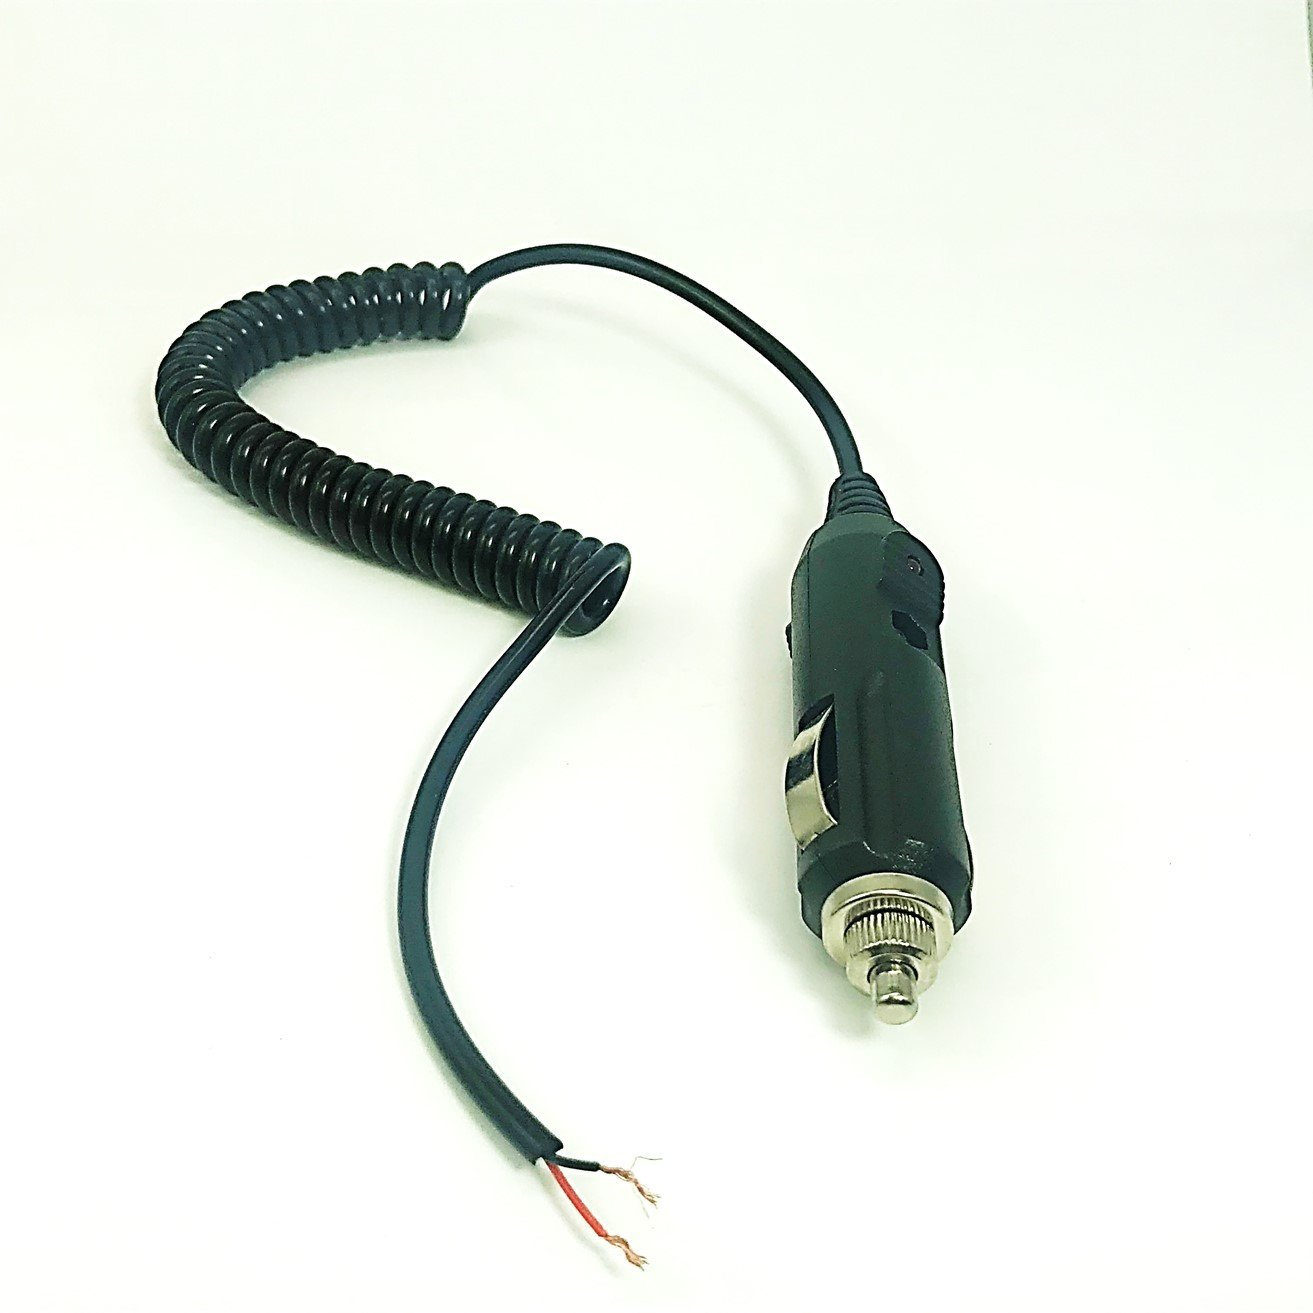 12 Volt CLA Hard Wire Power Cable for MDVR & Digital Wireless Camera Systems